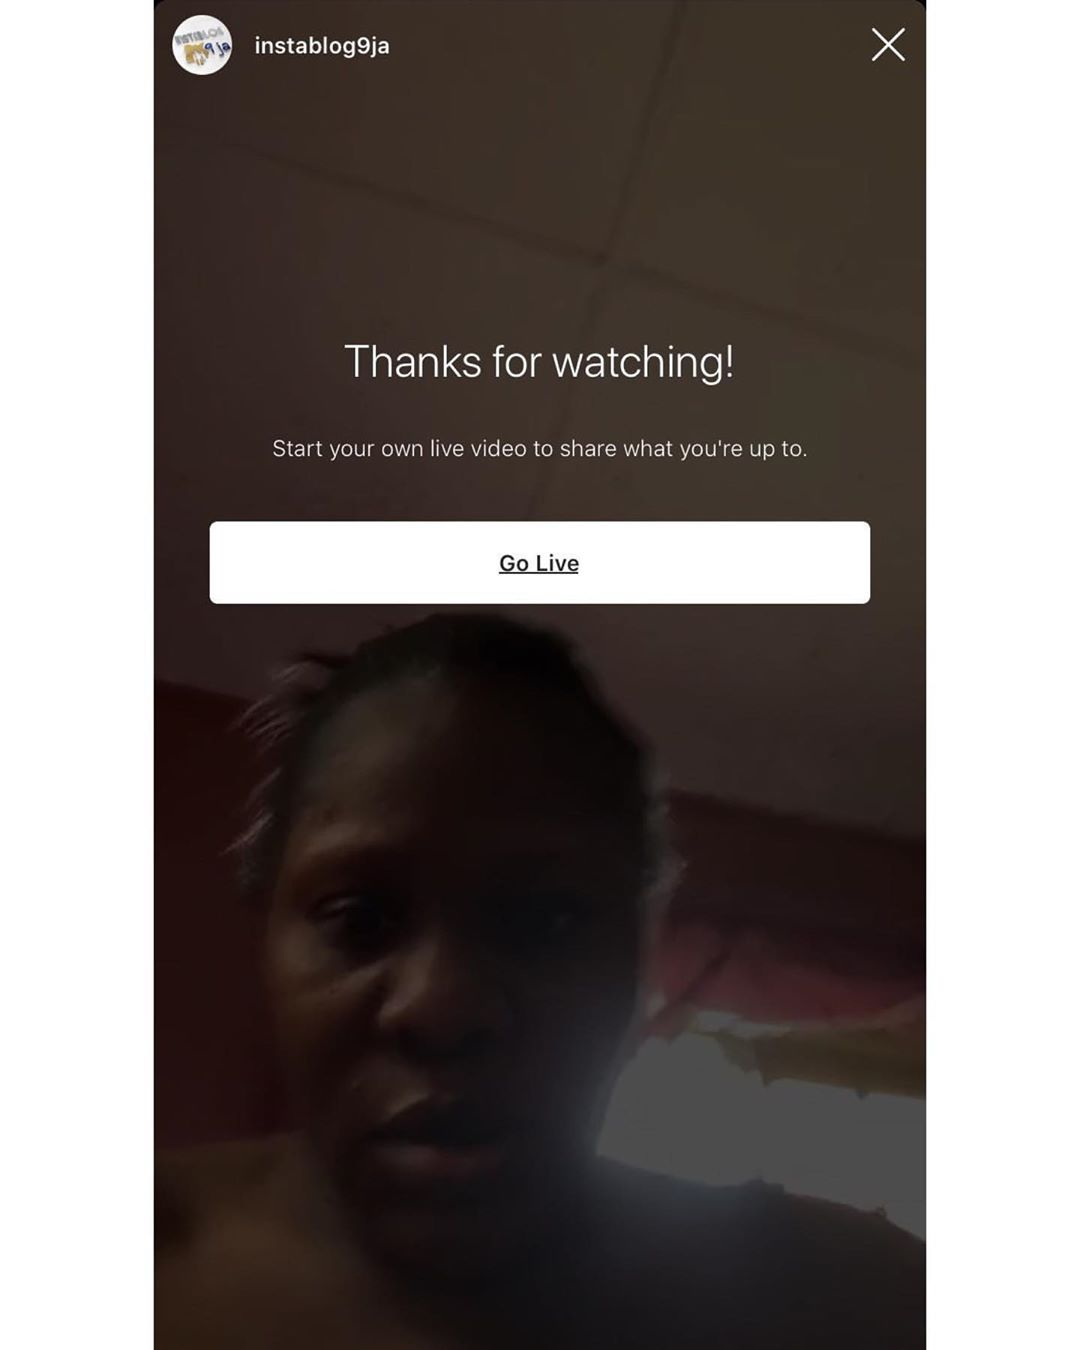 Reactions Trail As Instablog9ja Handler Is Exposed Mistakenly Goes Live On Instagram Many feared dead as boko haram attacks church on christmas day. exposed mistakenly goes live on instagram